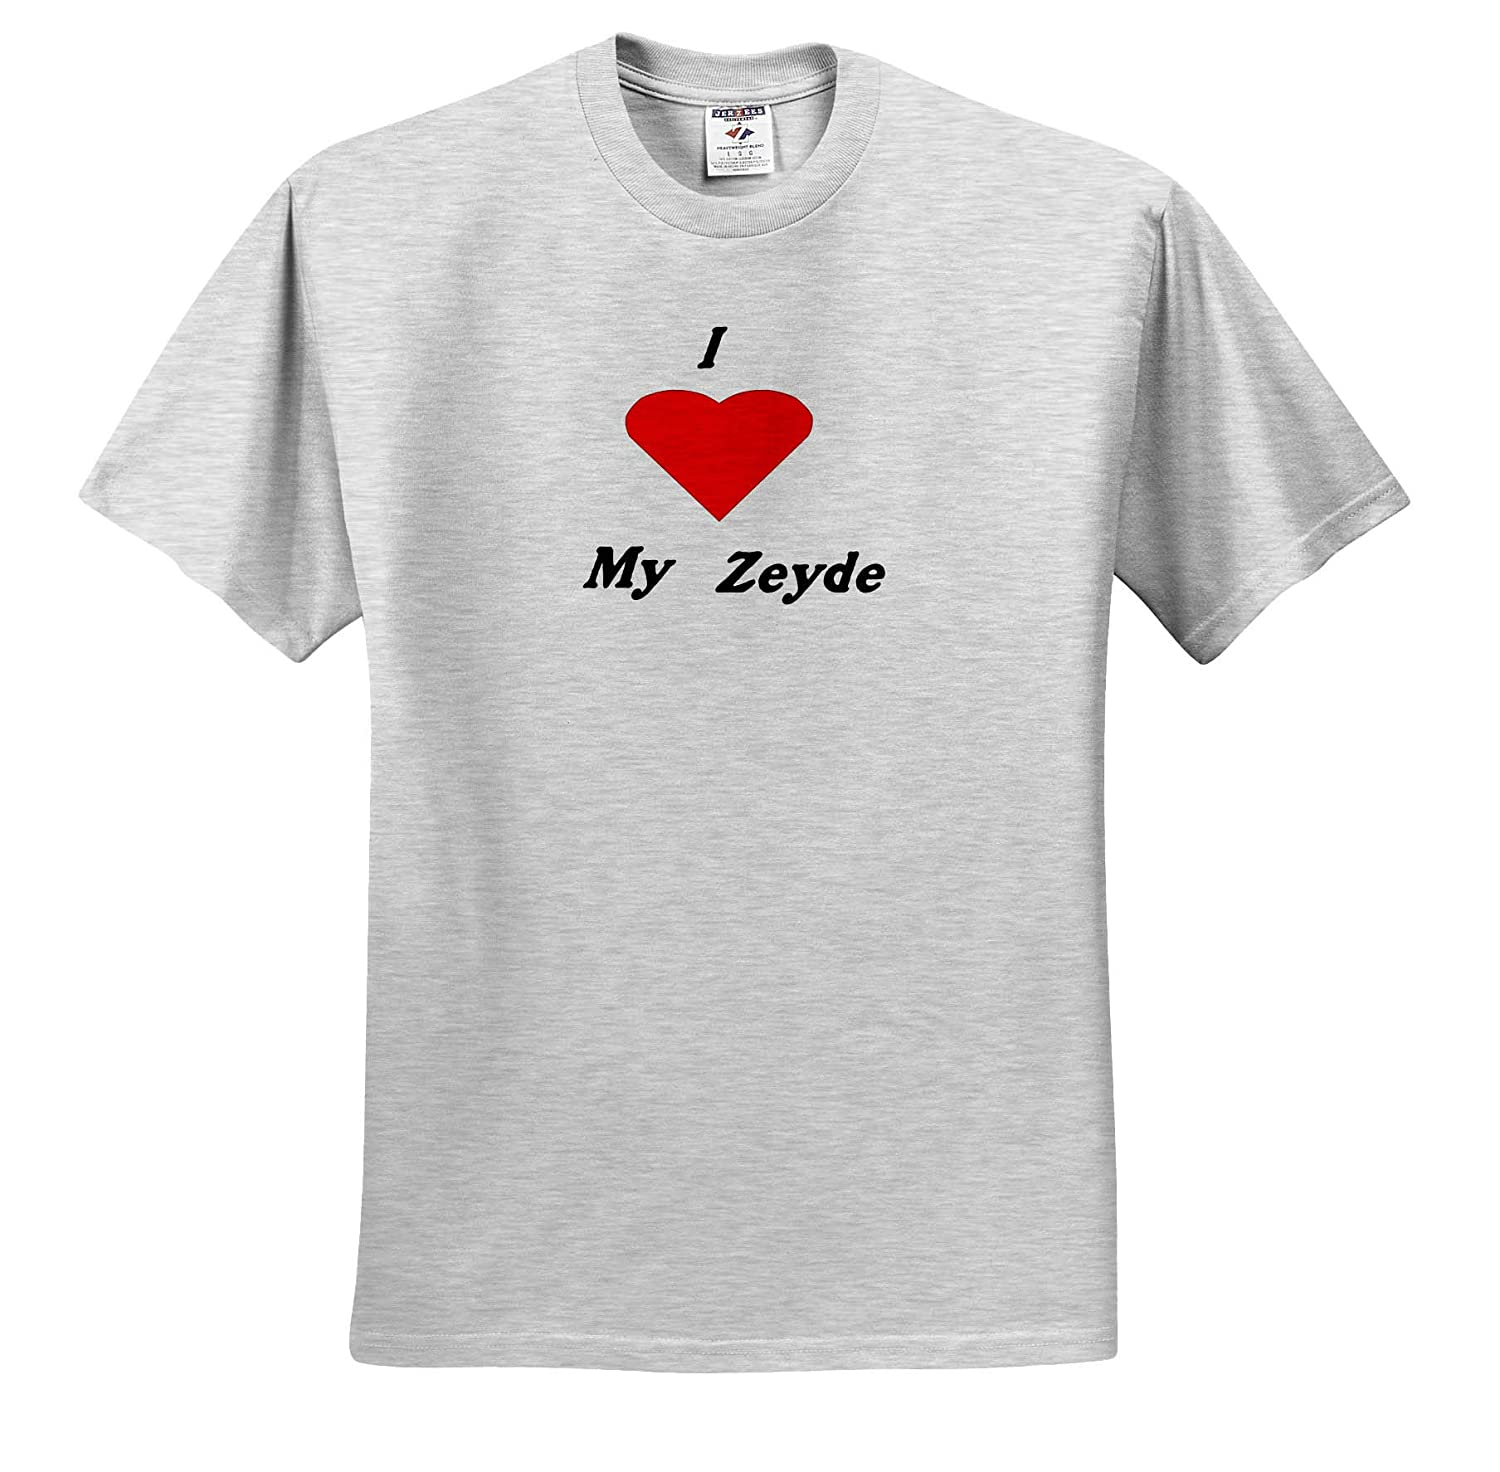 3dRose Lens Art by Florene Image of I Love My Zeyde Or Grandfather with Red Heart Jewish Humor and Sayings T-Shirts